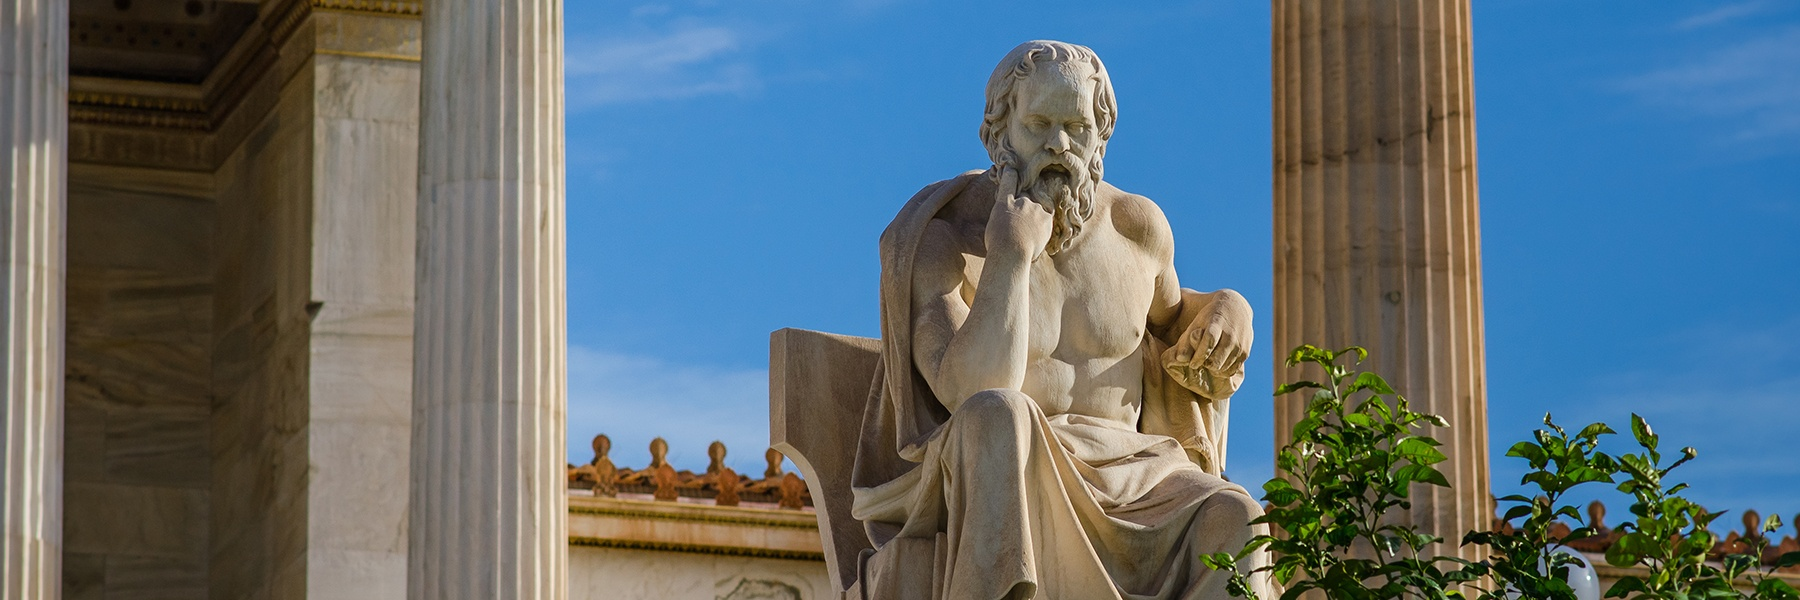 Image of ancient statue of the great Greek philosopher Socrates on background of classical columns.